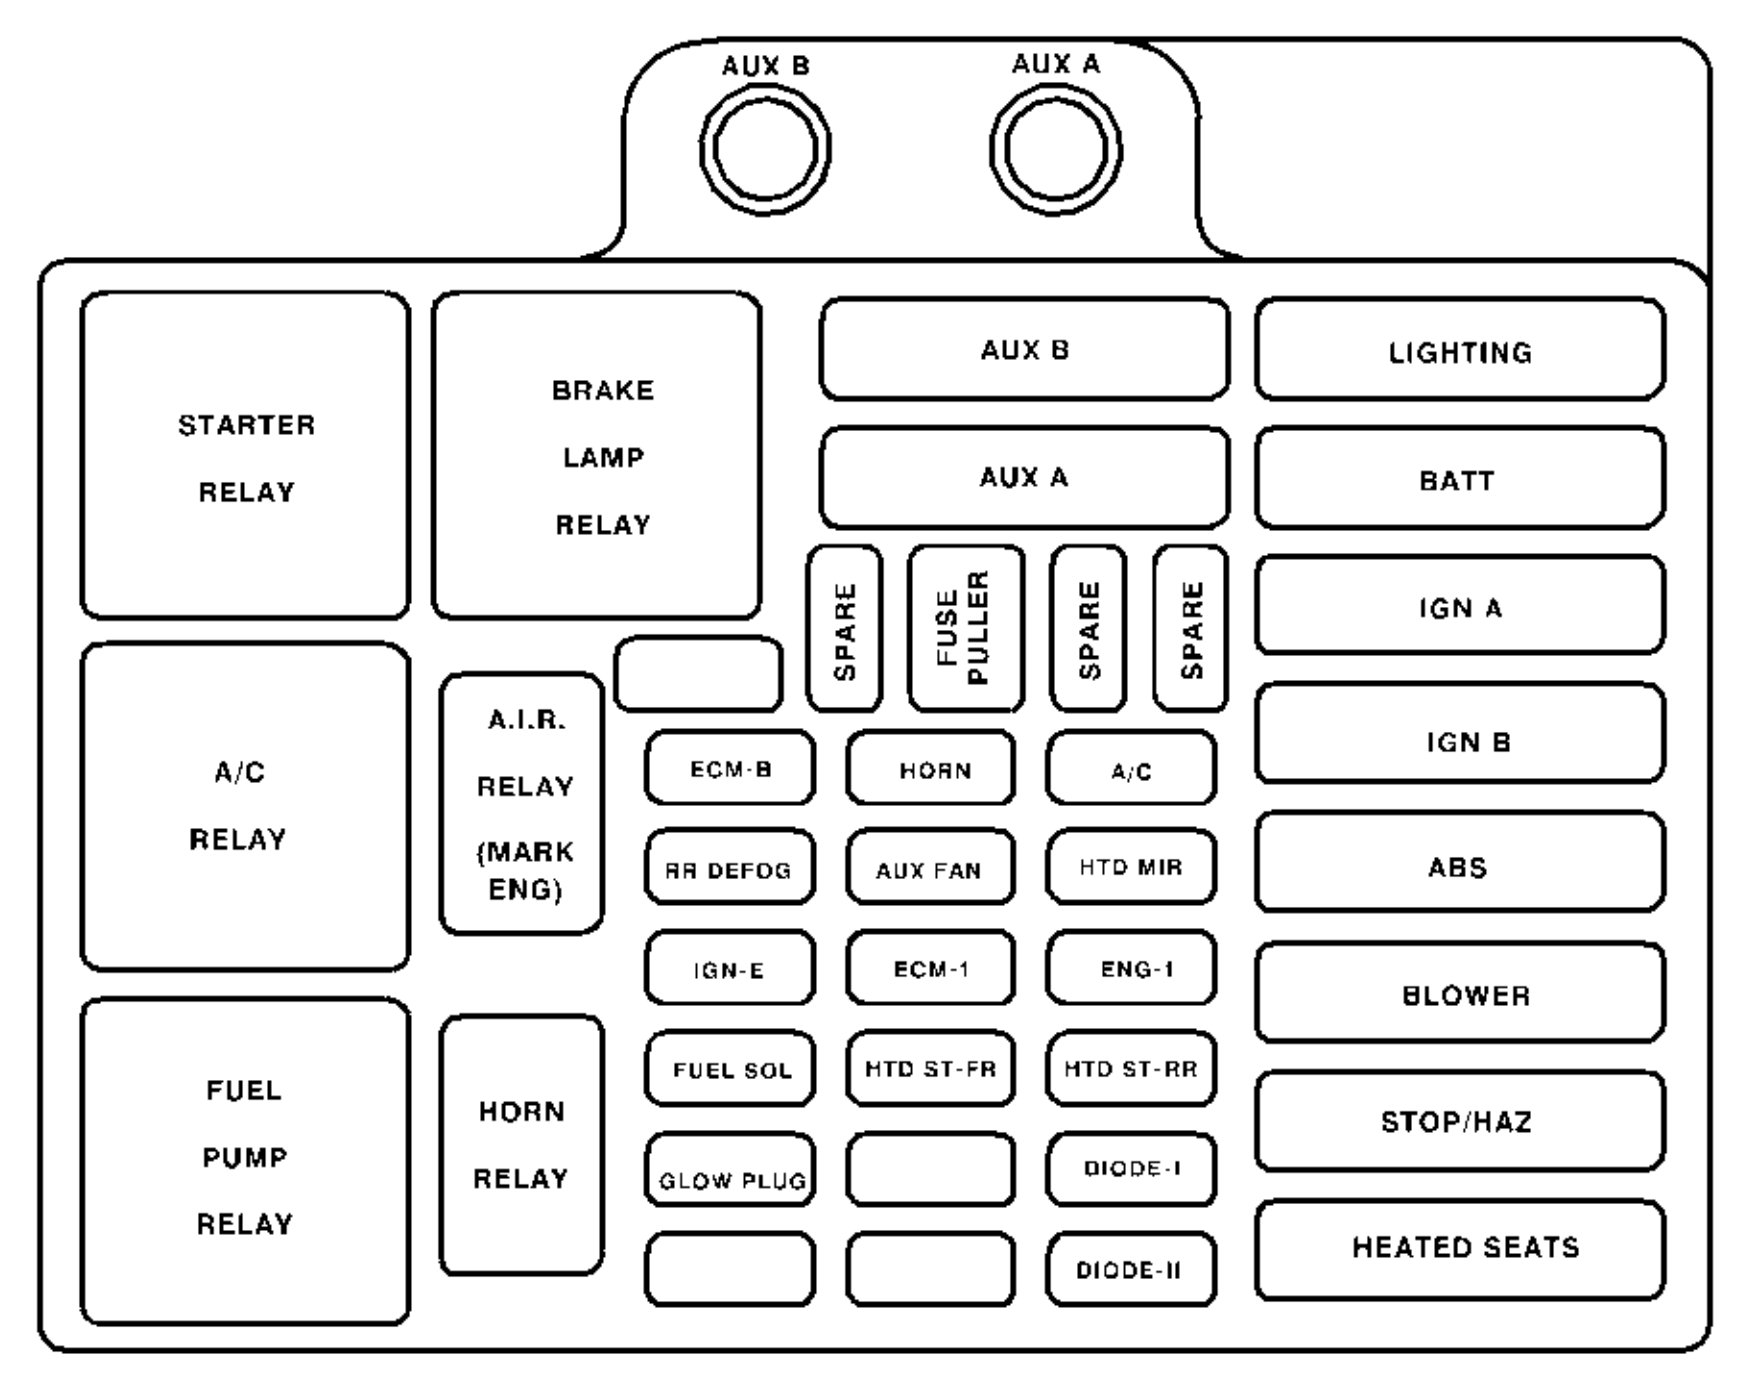 DIAGRAM] 40 Chevrolet Fuse Box Diagram FULL Version HD Quality ...